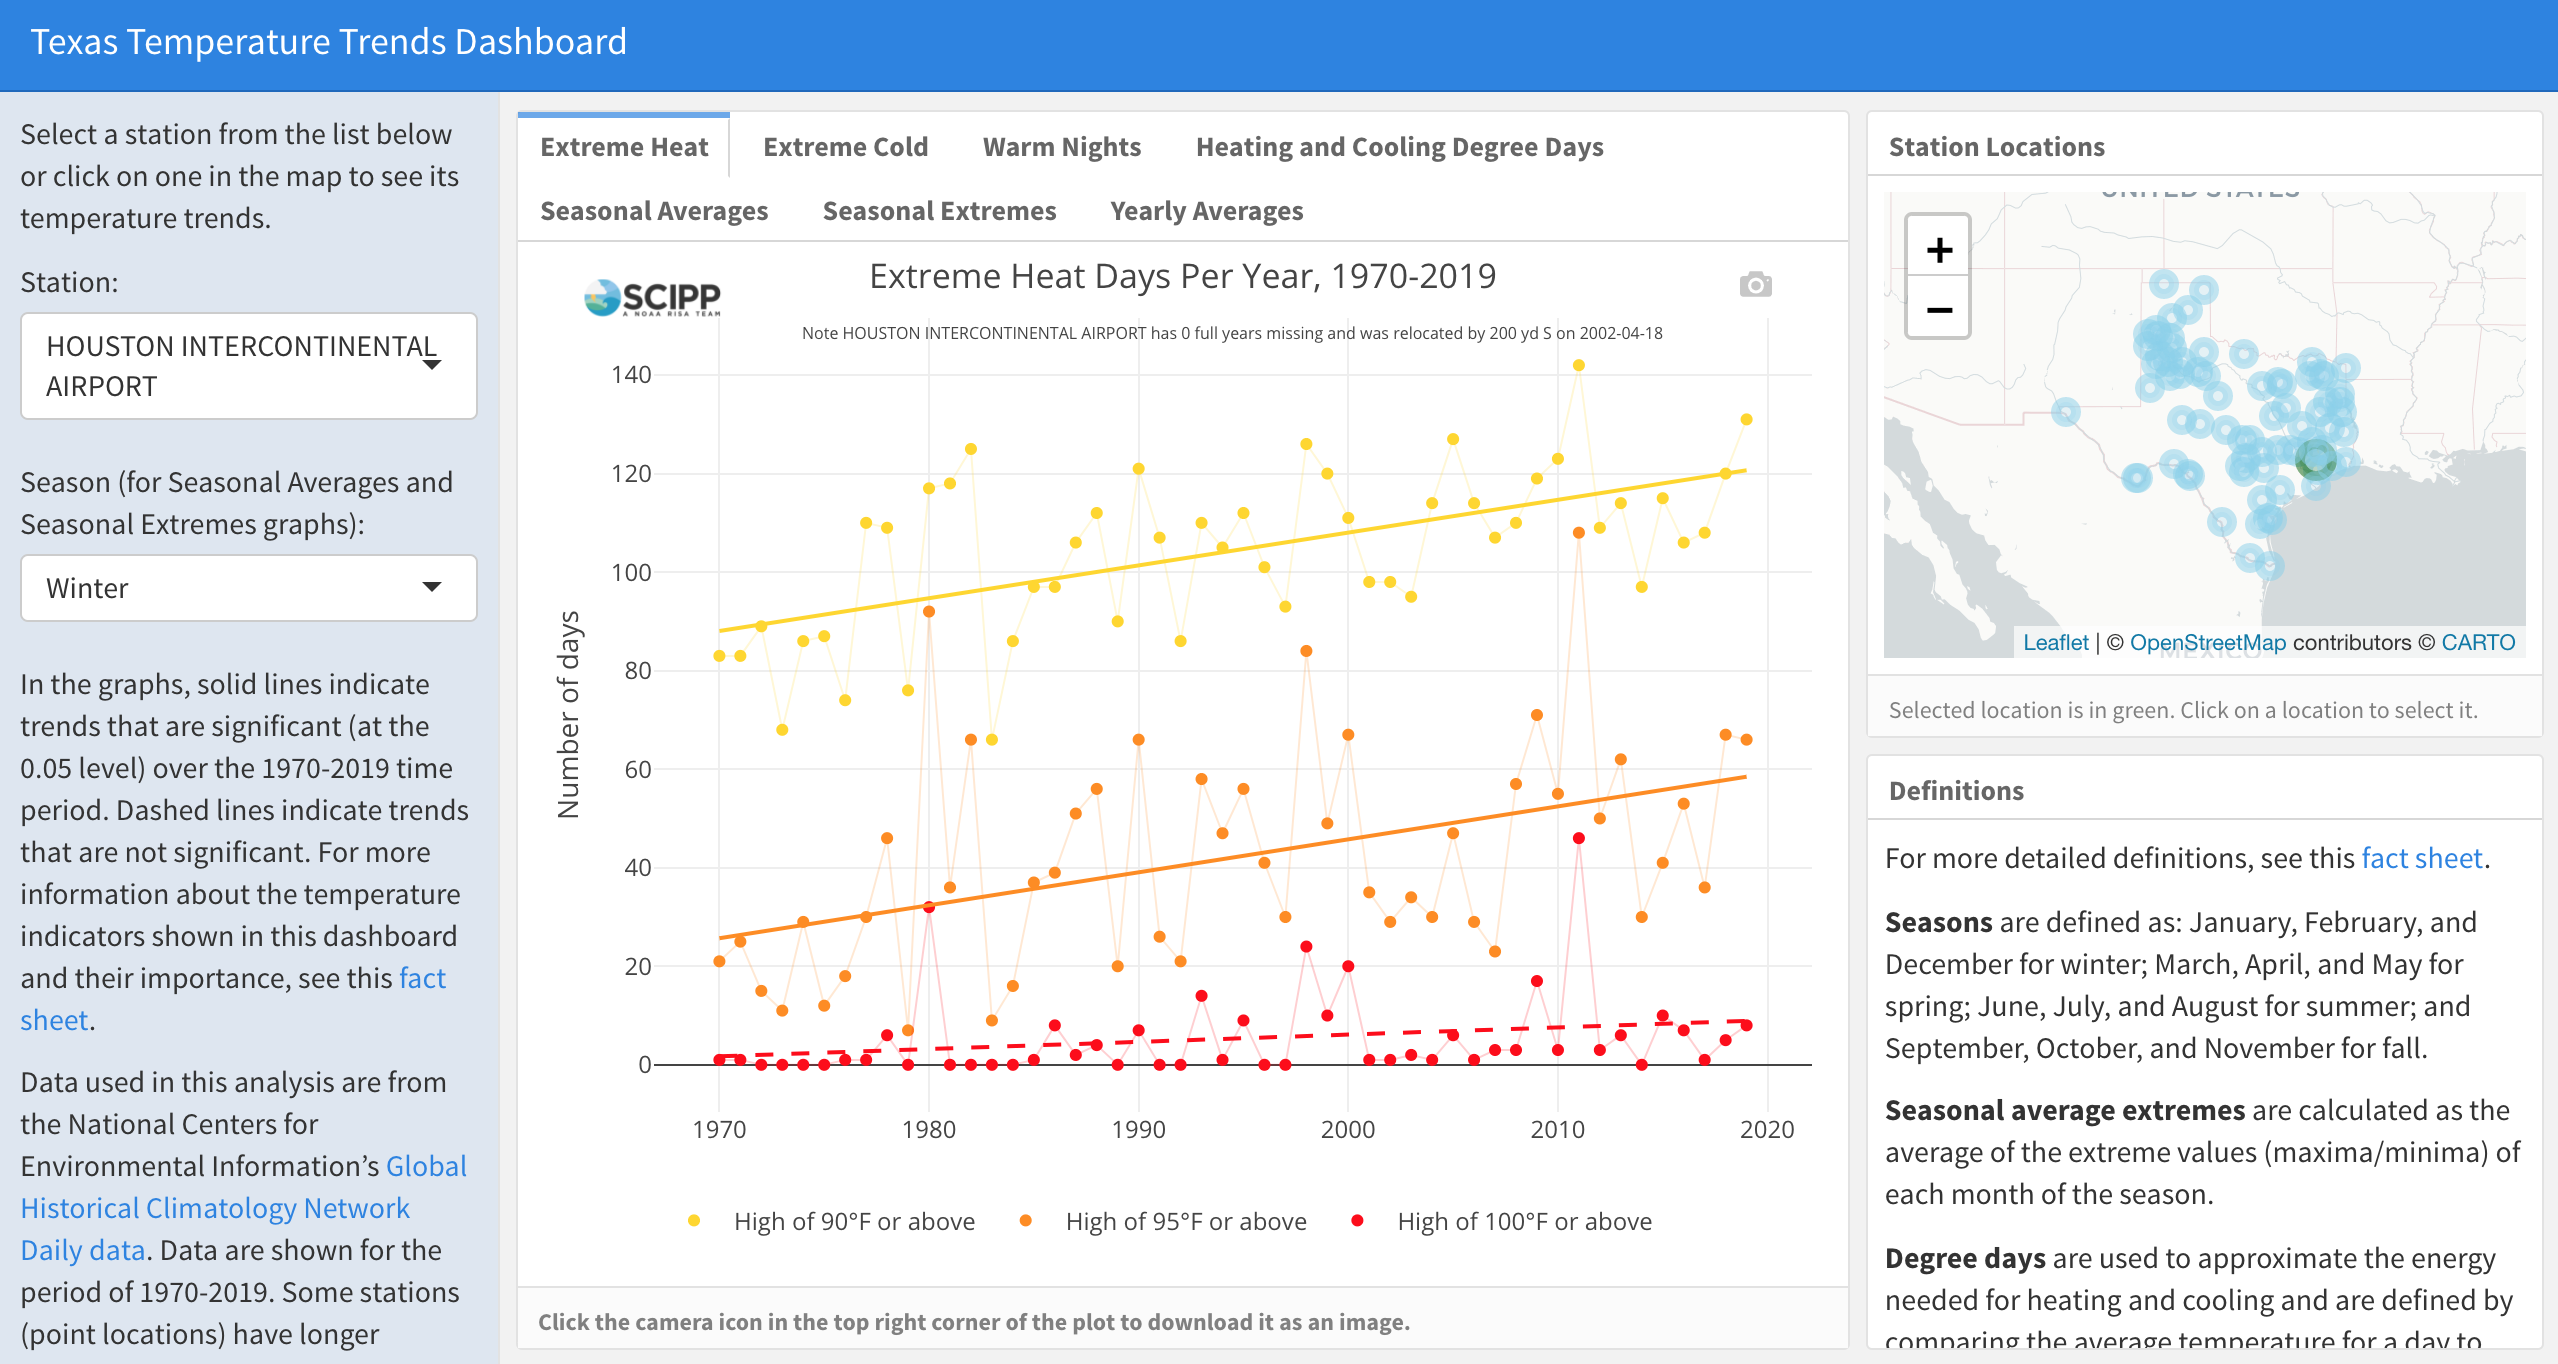 Extreme Heat Days Per Year (1970-2019) at the Houston Intercontinental Airport Station.